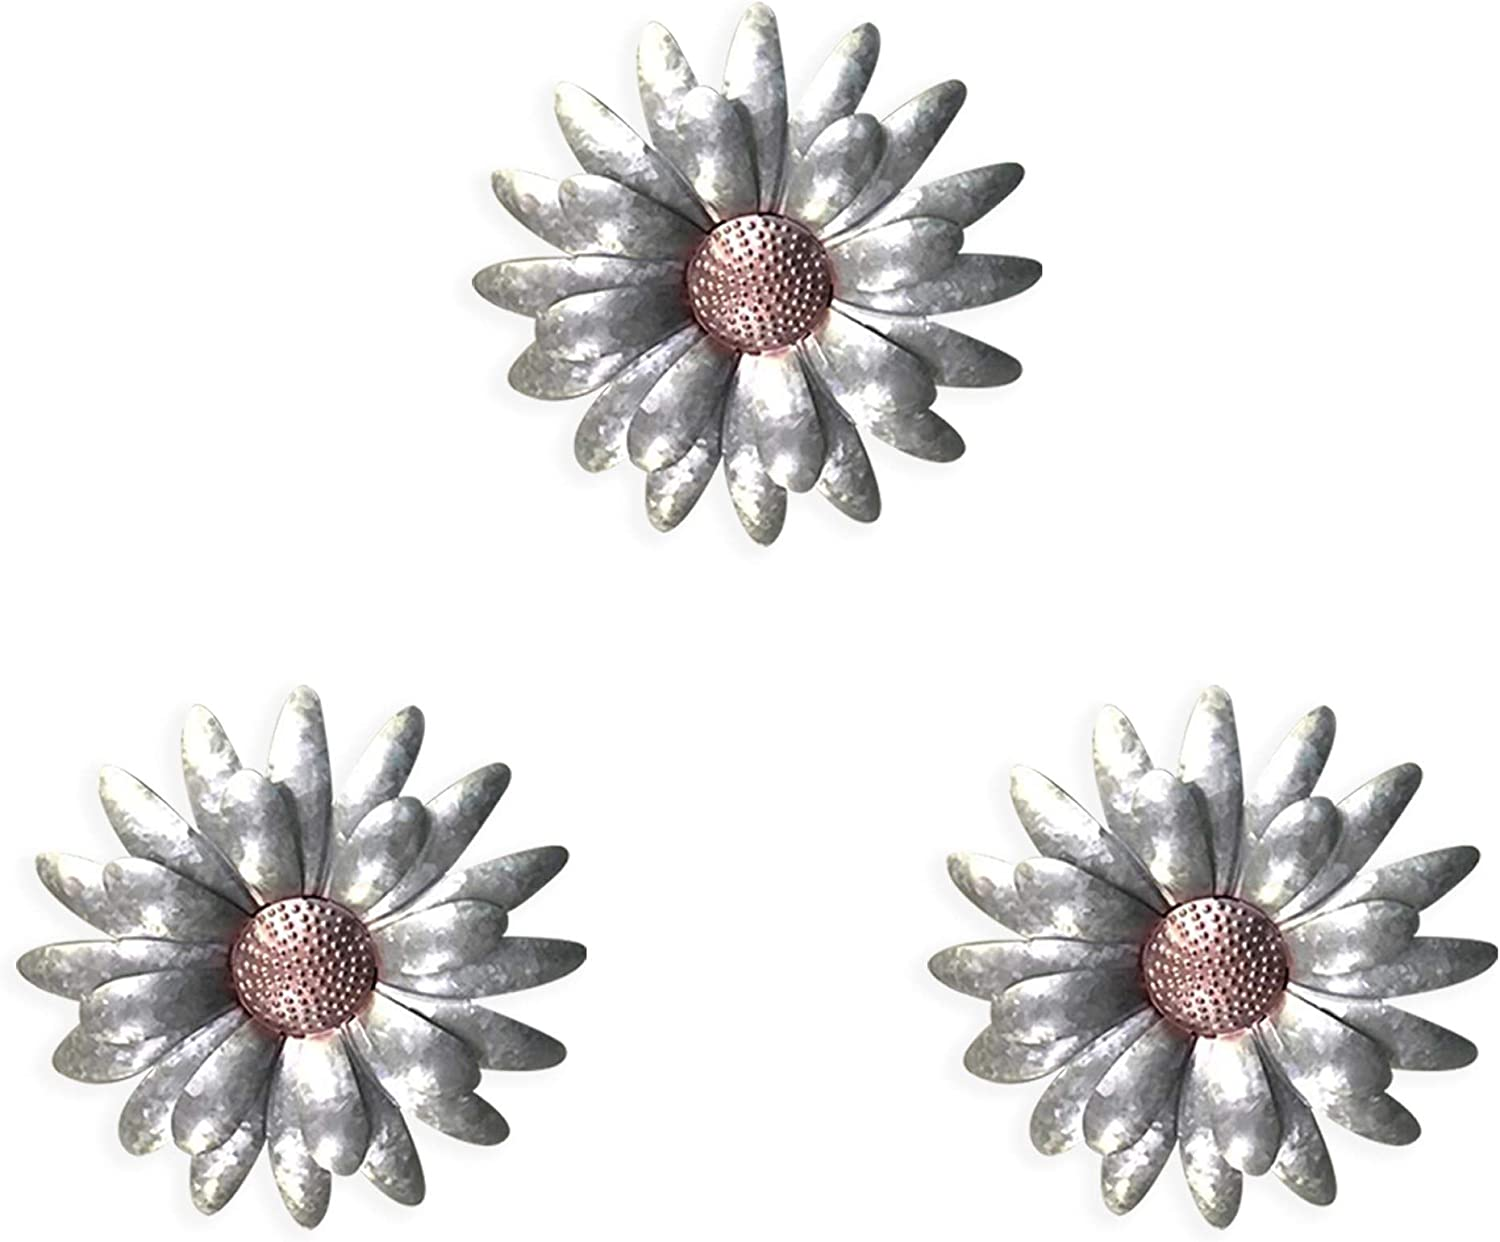 "Galvanised Flowers Wall Décor (Set of 3, 10""), Rustic Metal Flower Wall Art. Perfect indoor metal wall decor! Stunning large outdoor wall decorations for patio/fence decoration (Galvanised Rose Gold)"